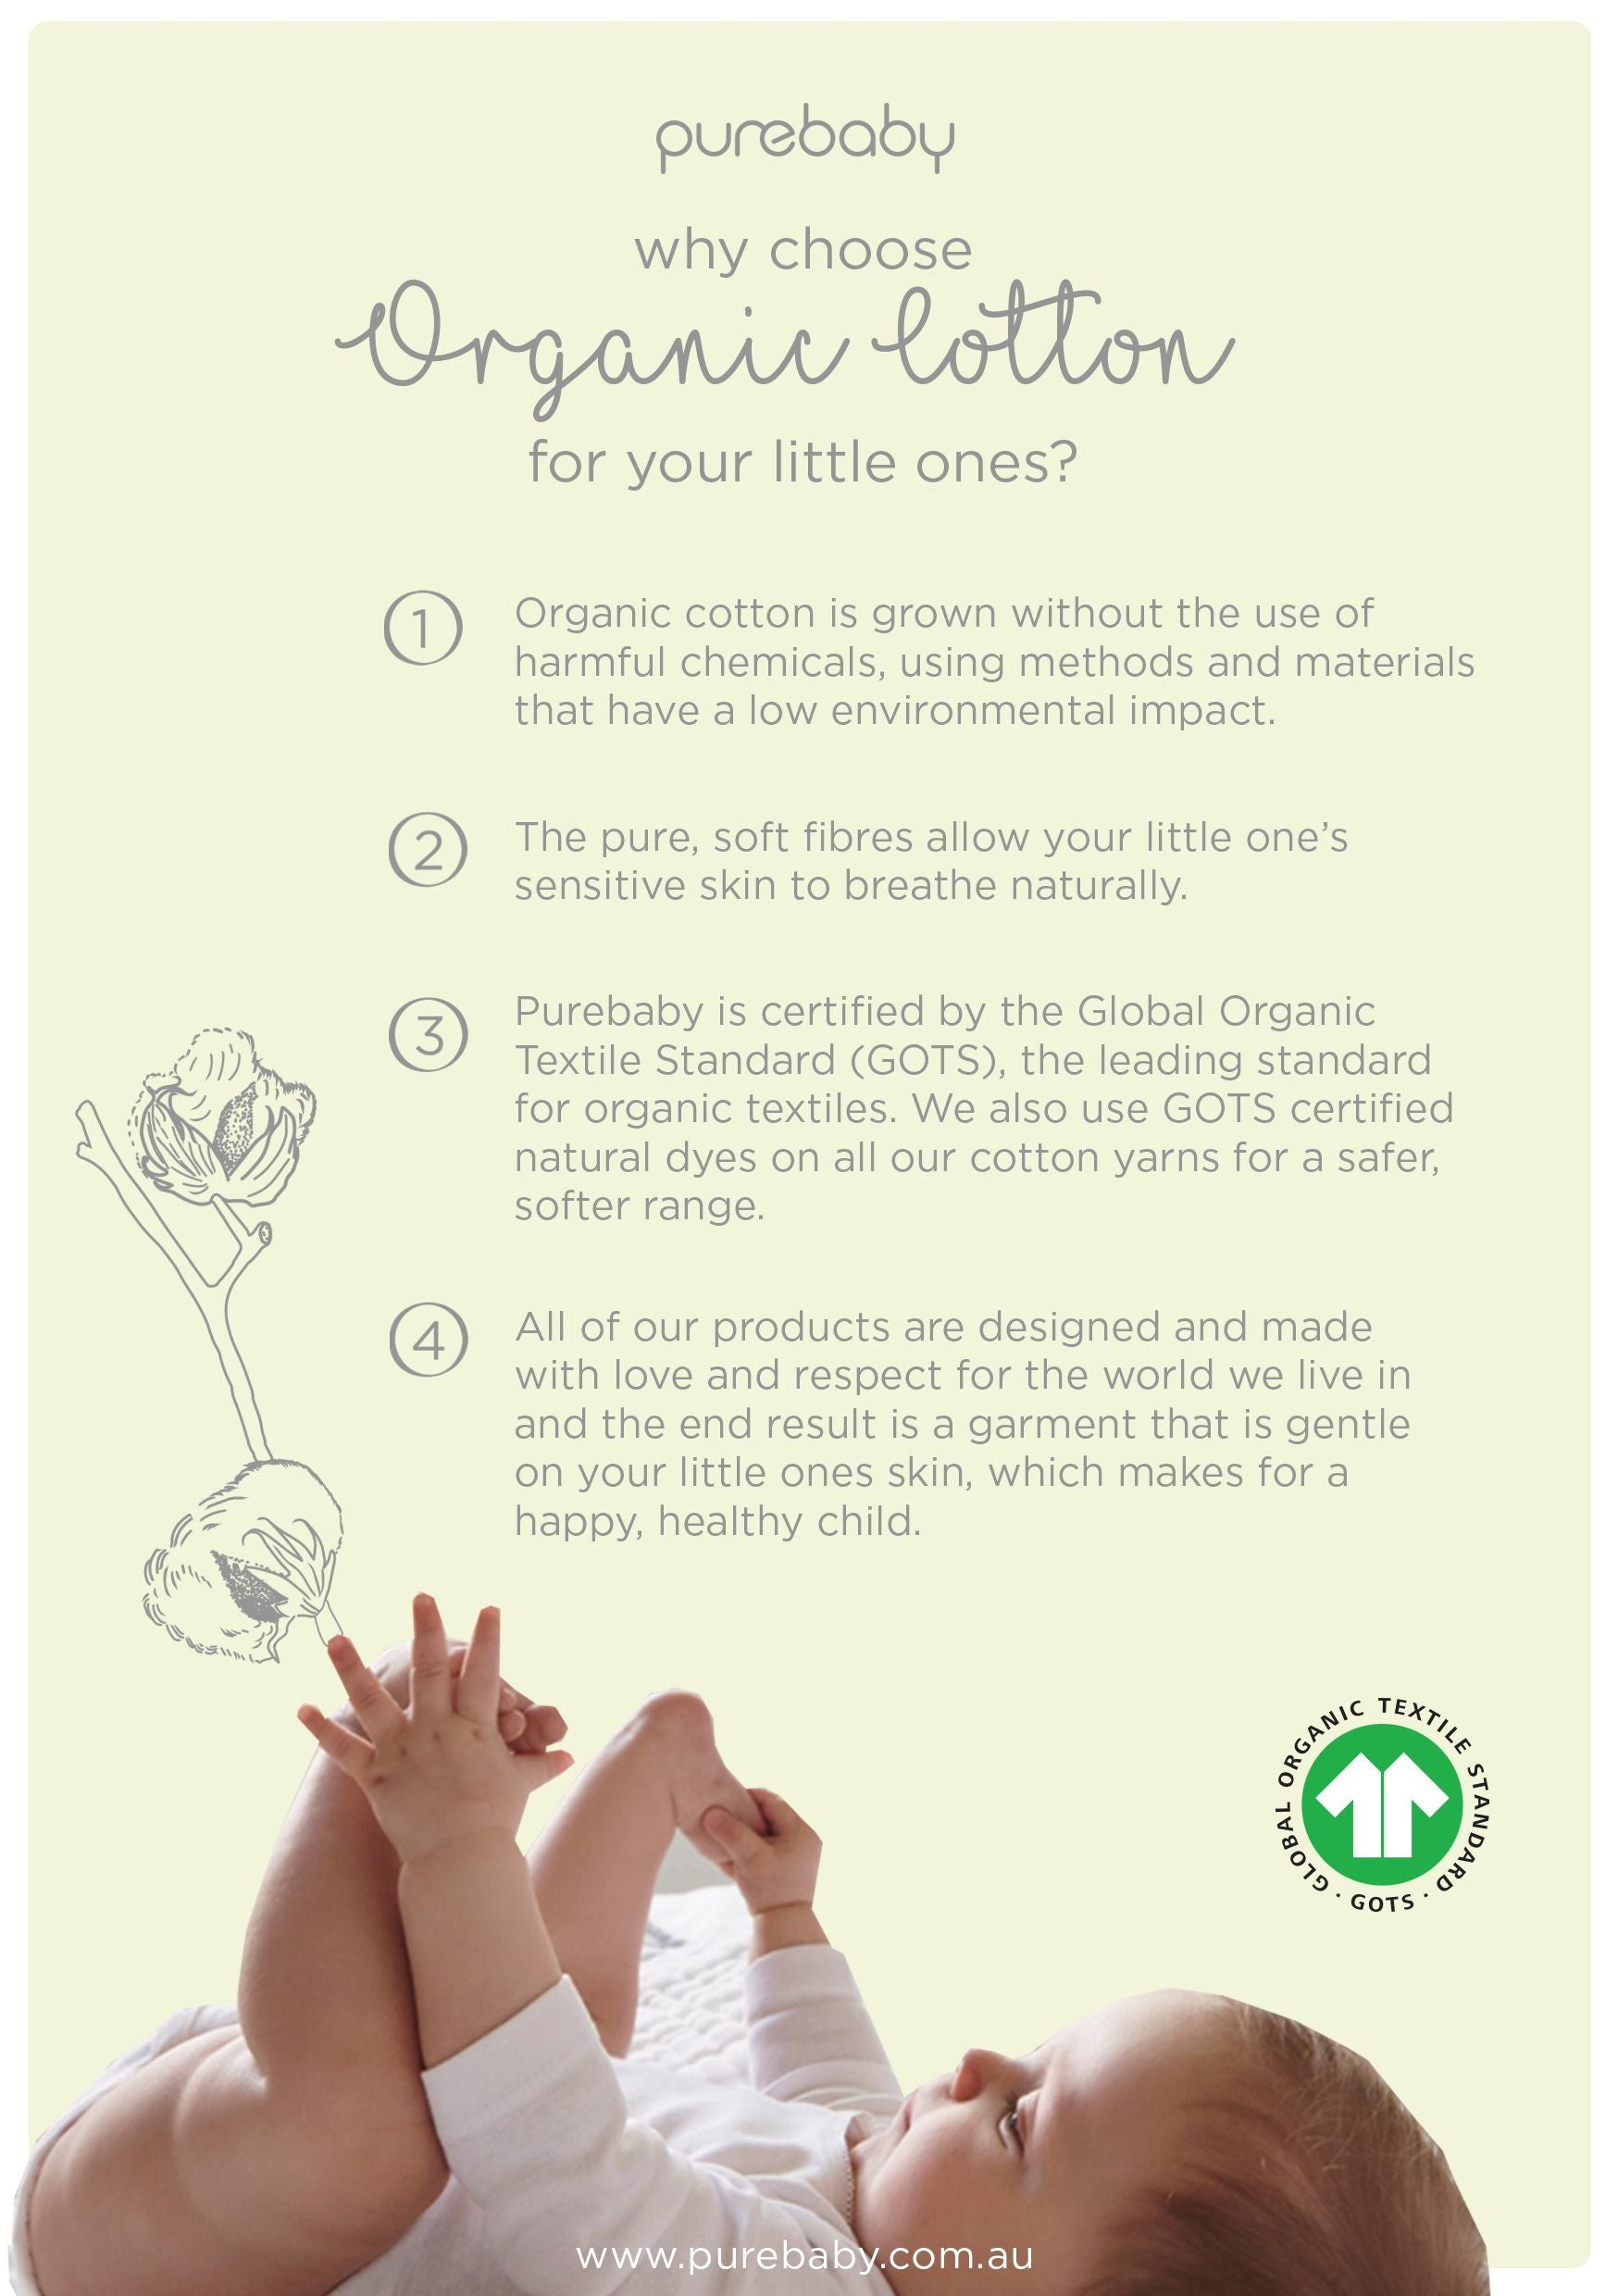 Purebaby Why Choose Organic Cotton